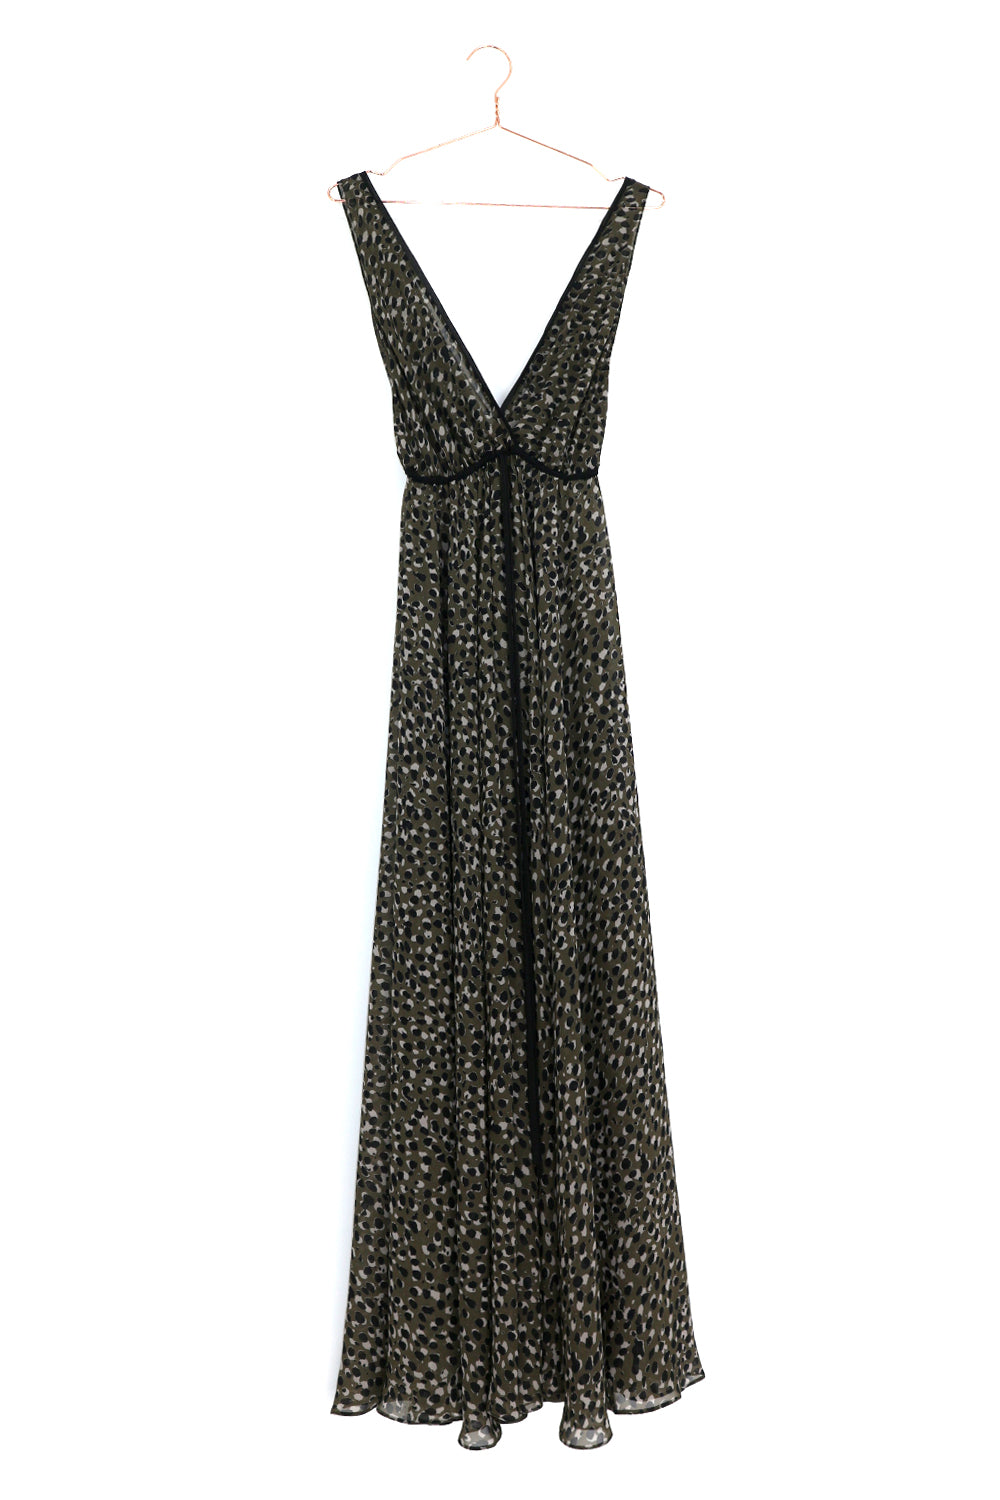 Pebble Print Lucie Dress